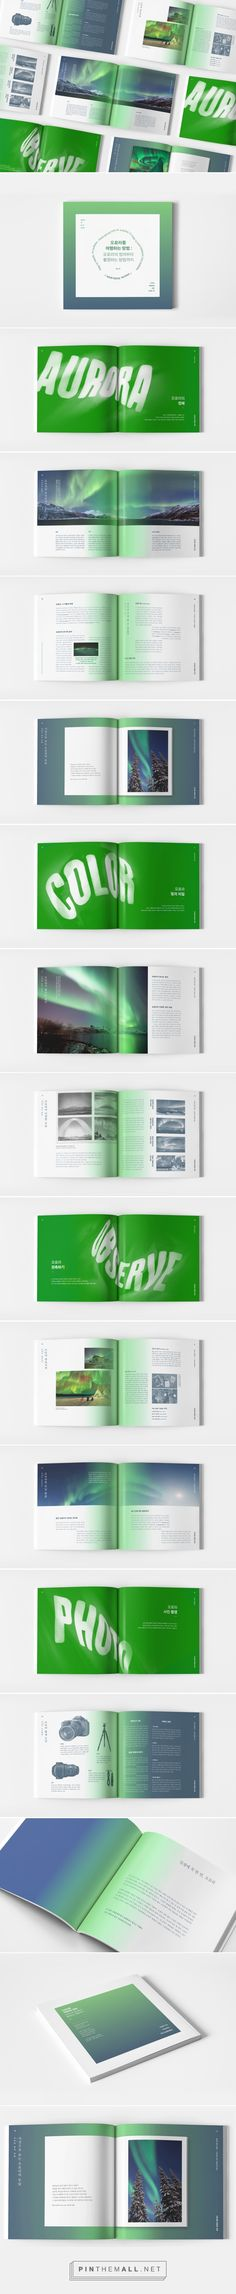 How to travel to Aurora : Guide Book - Editorial Design on Behance - created via https://pinthemall.net